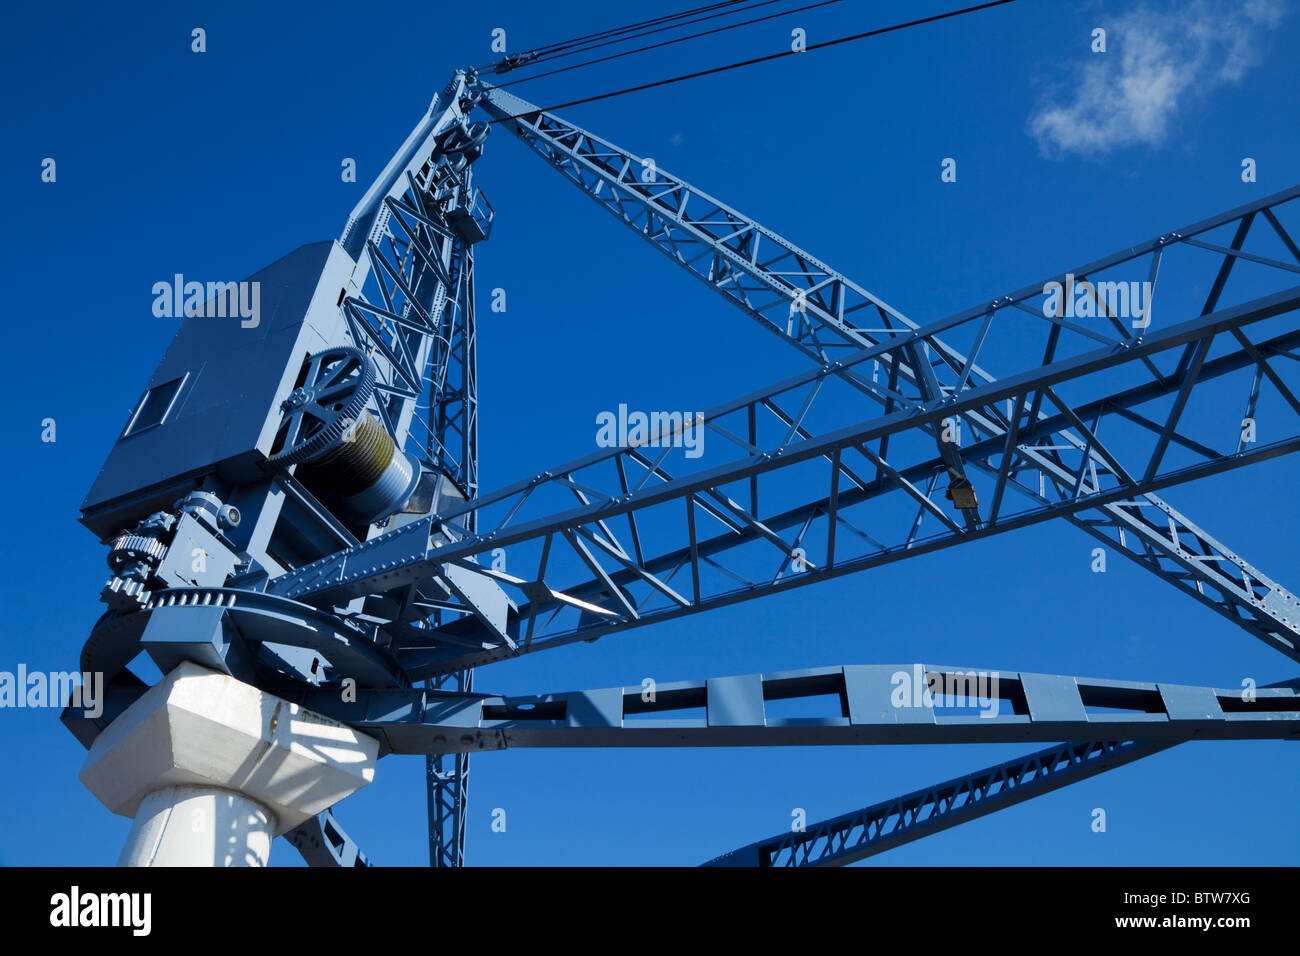 Dock Crane on the Quays, Now a Sculptural Exhibit, Waterford City, Ireland - Stock Image